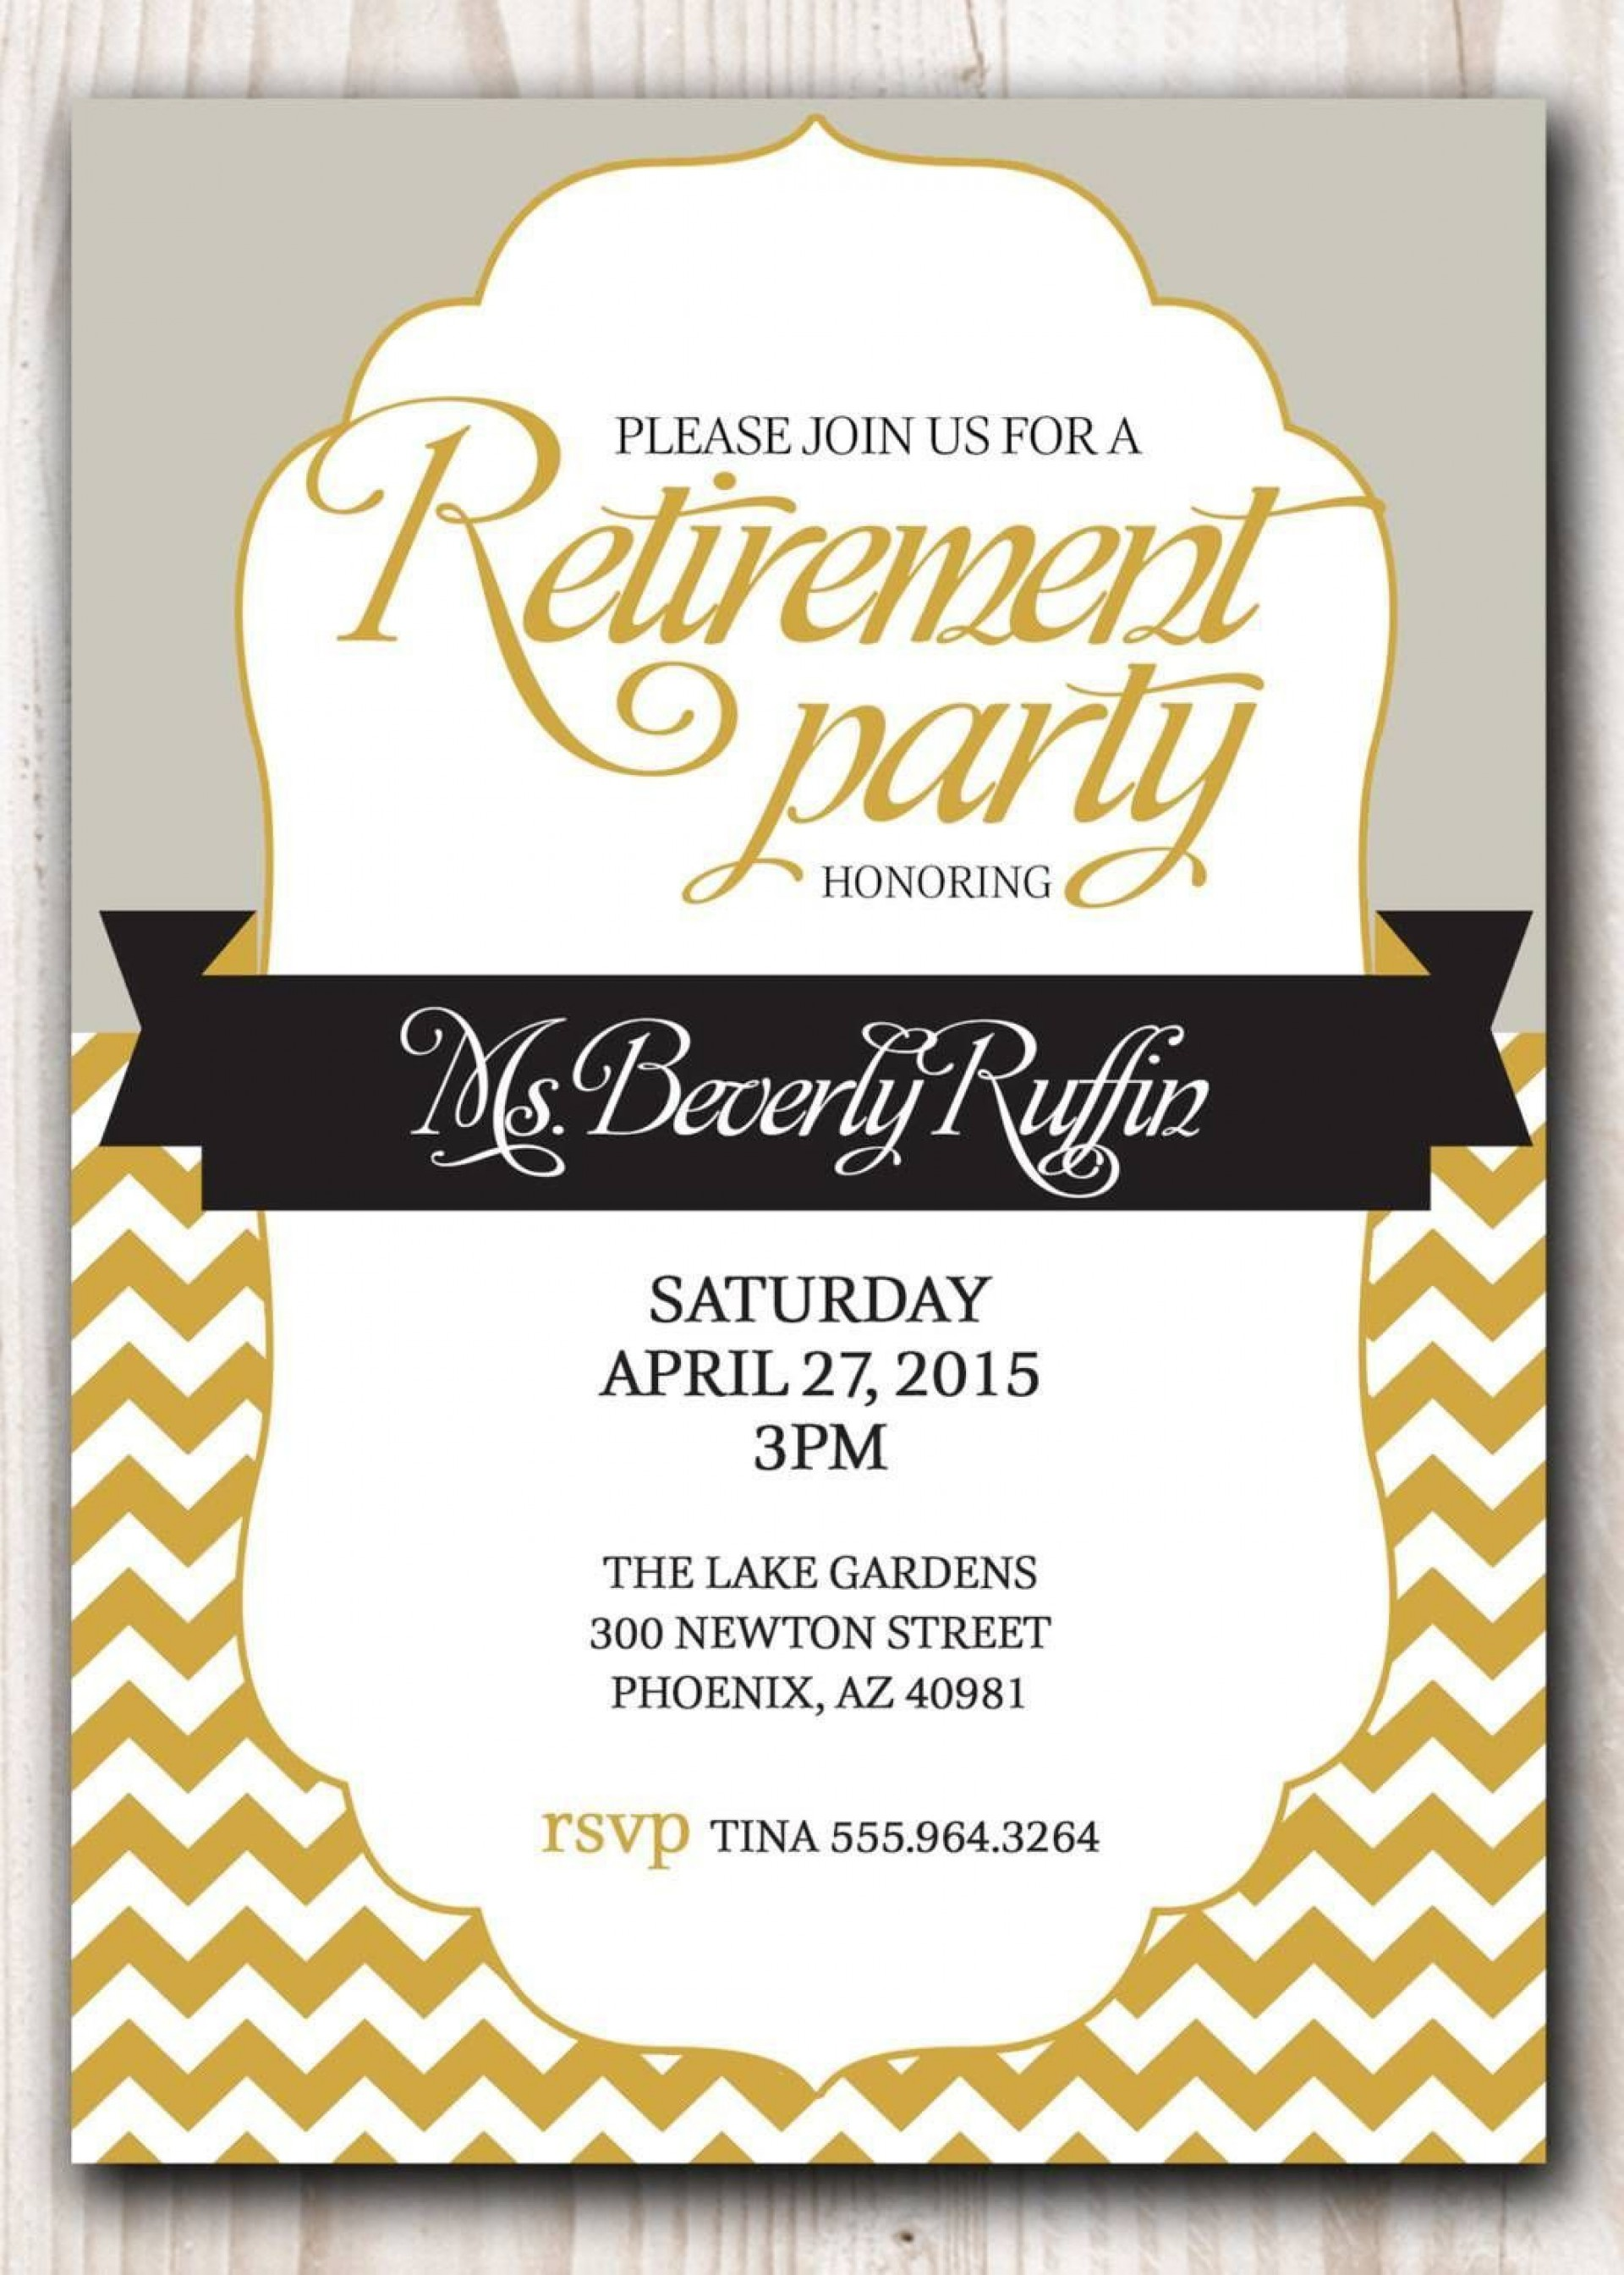 008 Incredible Retirement Party Invite Template Word Free Design 1920